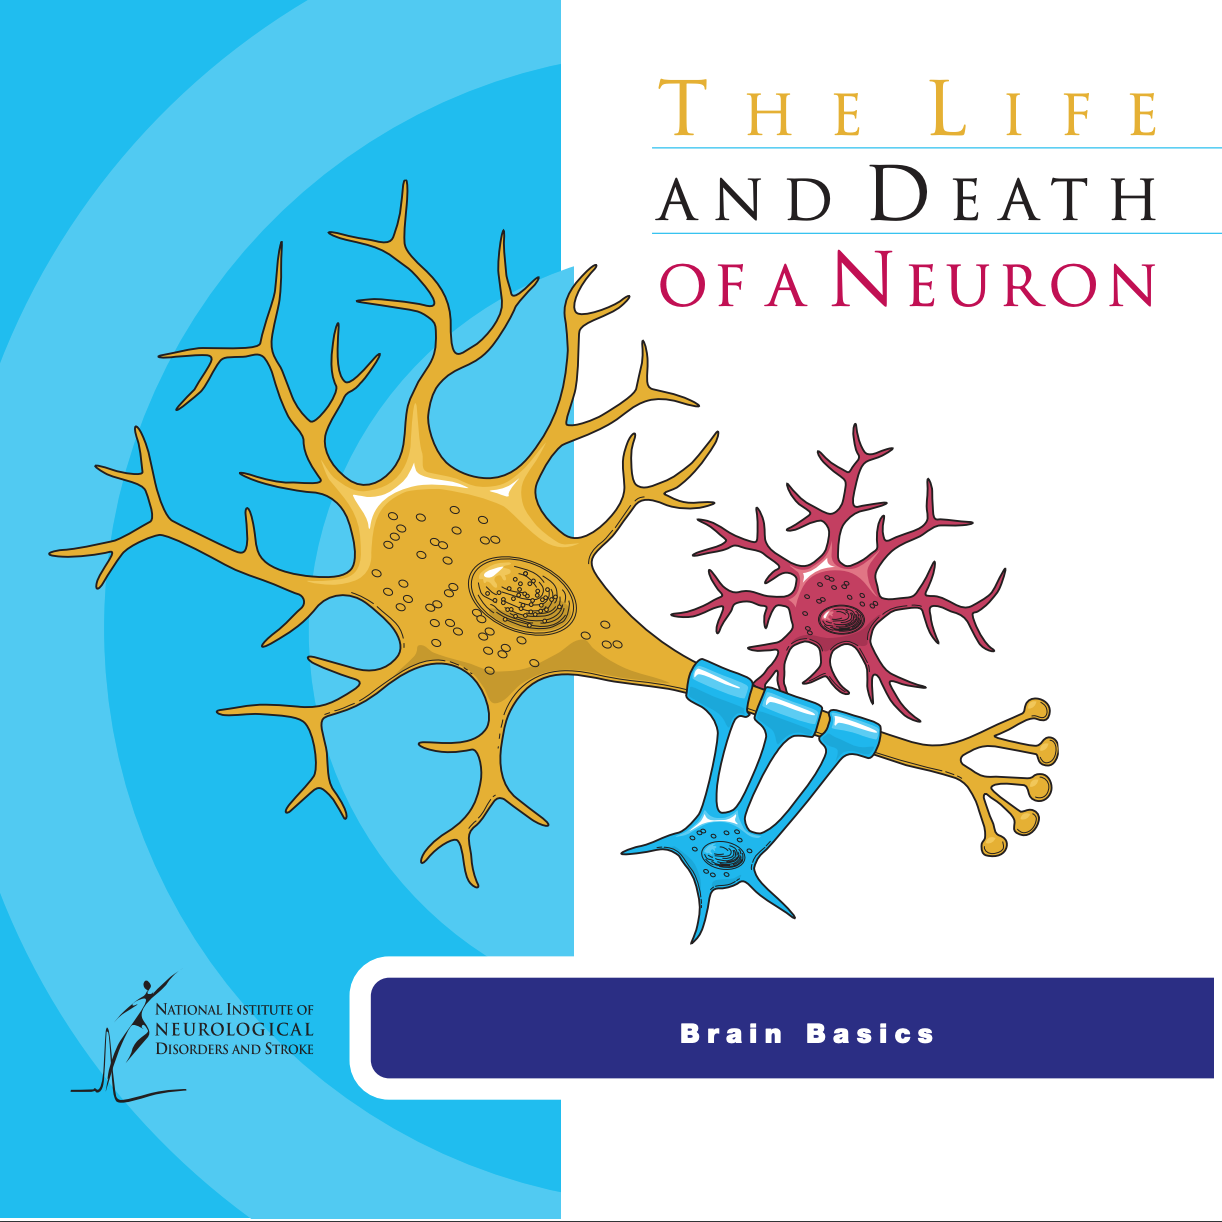 The Life and Death of a Neuron